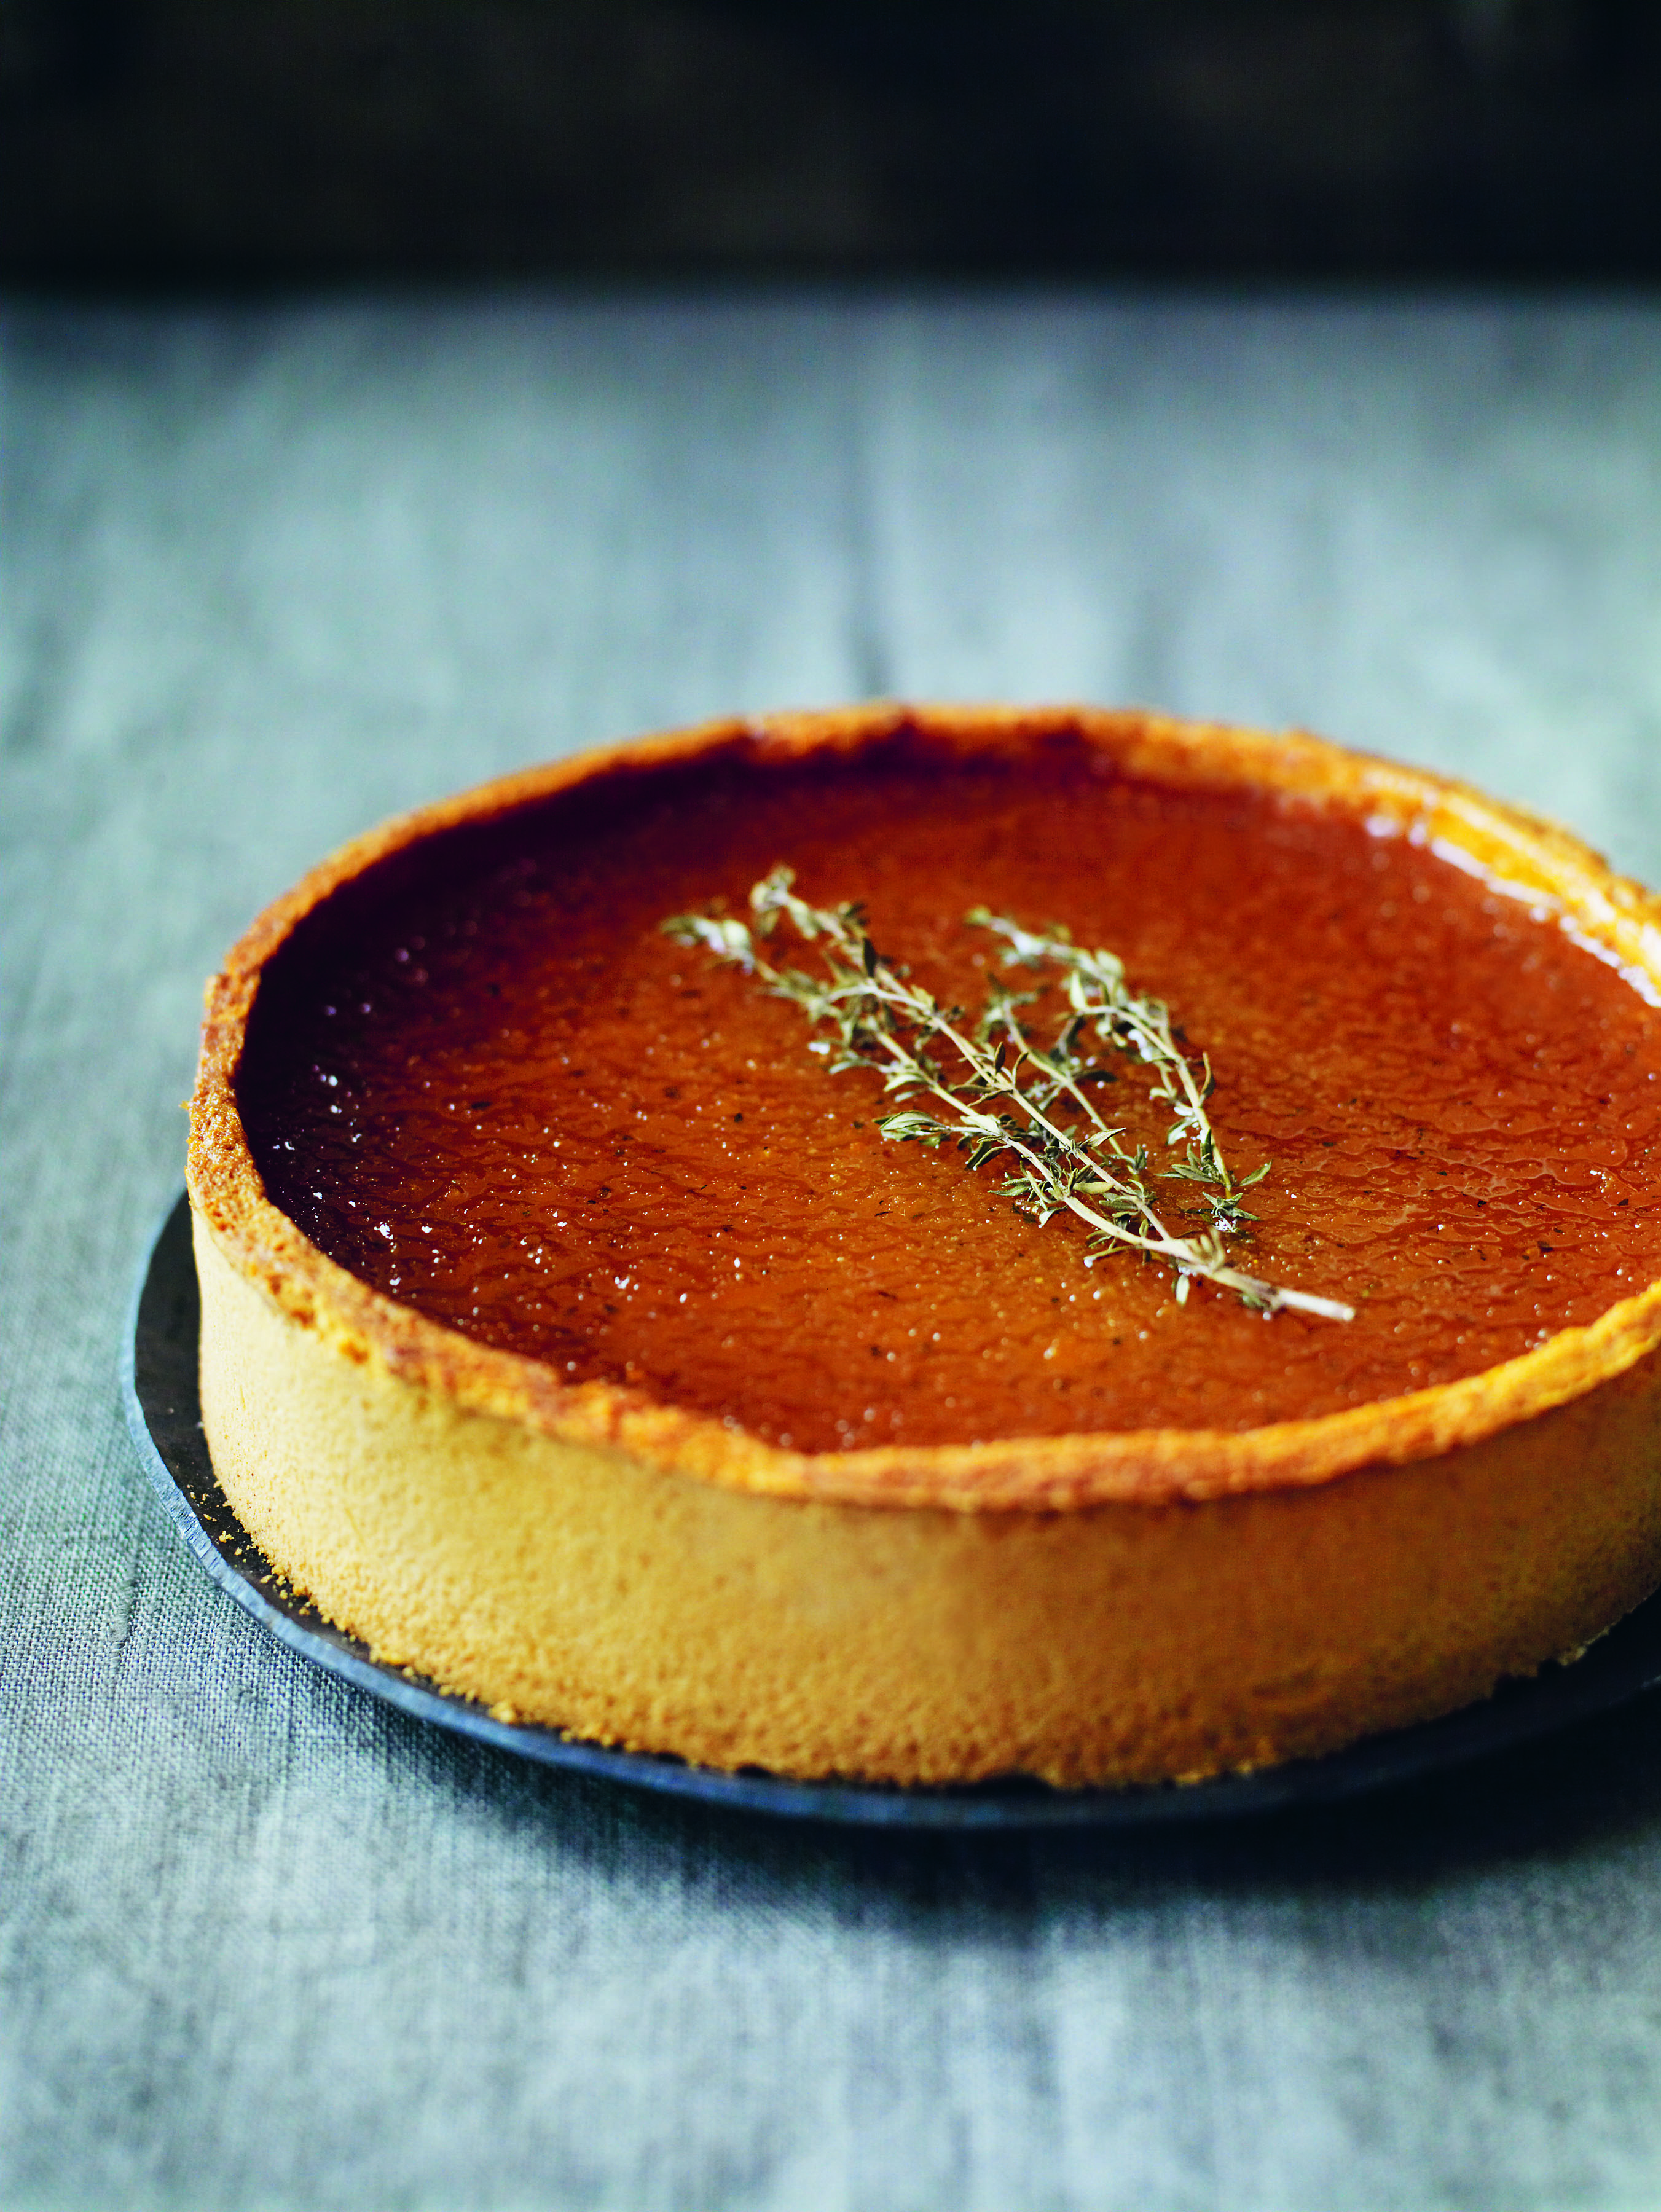 Thyme & Orange Treacle Tart